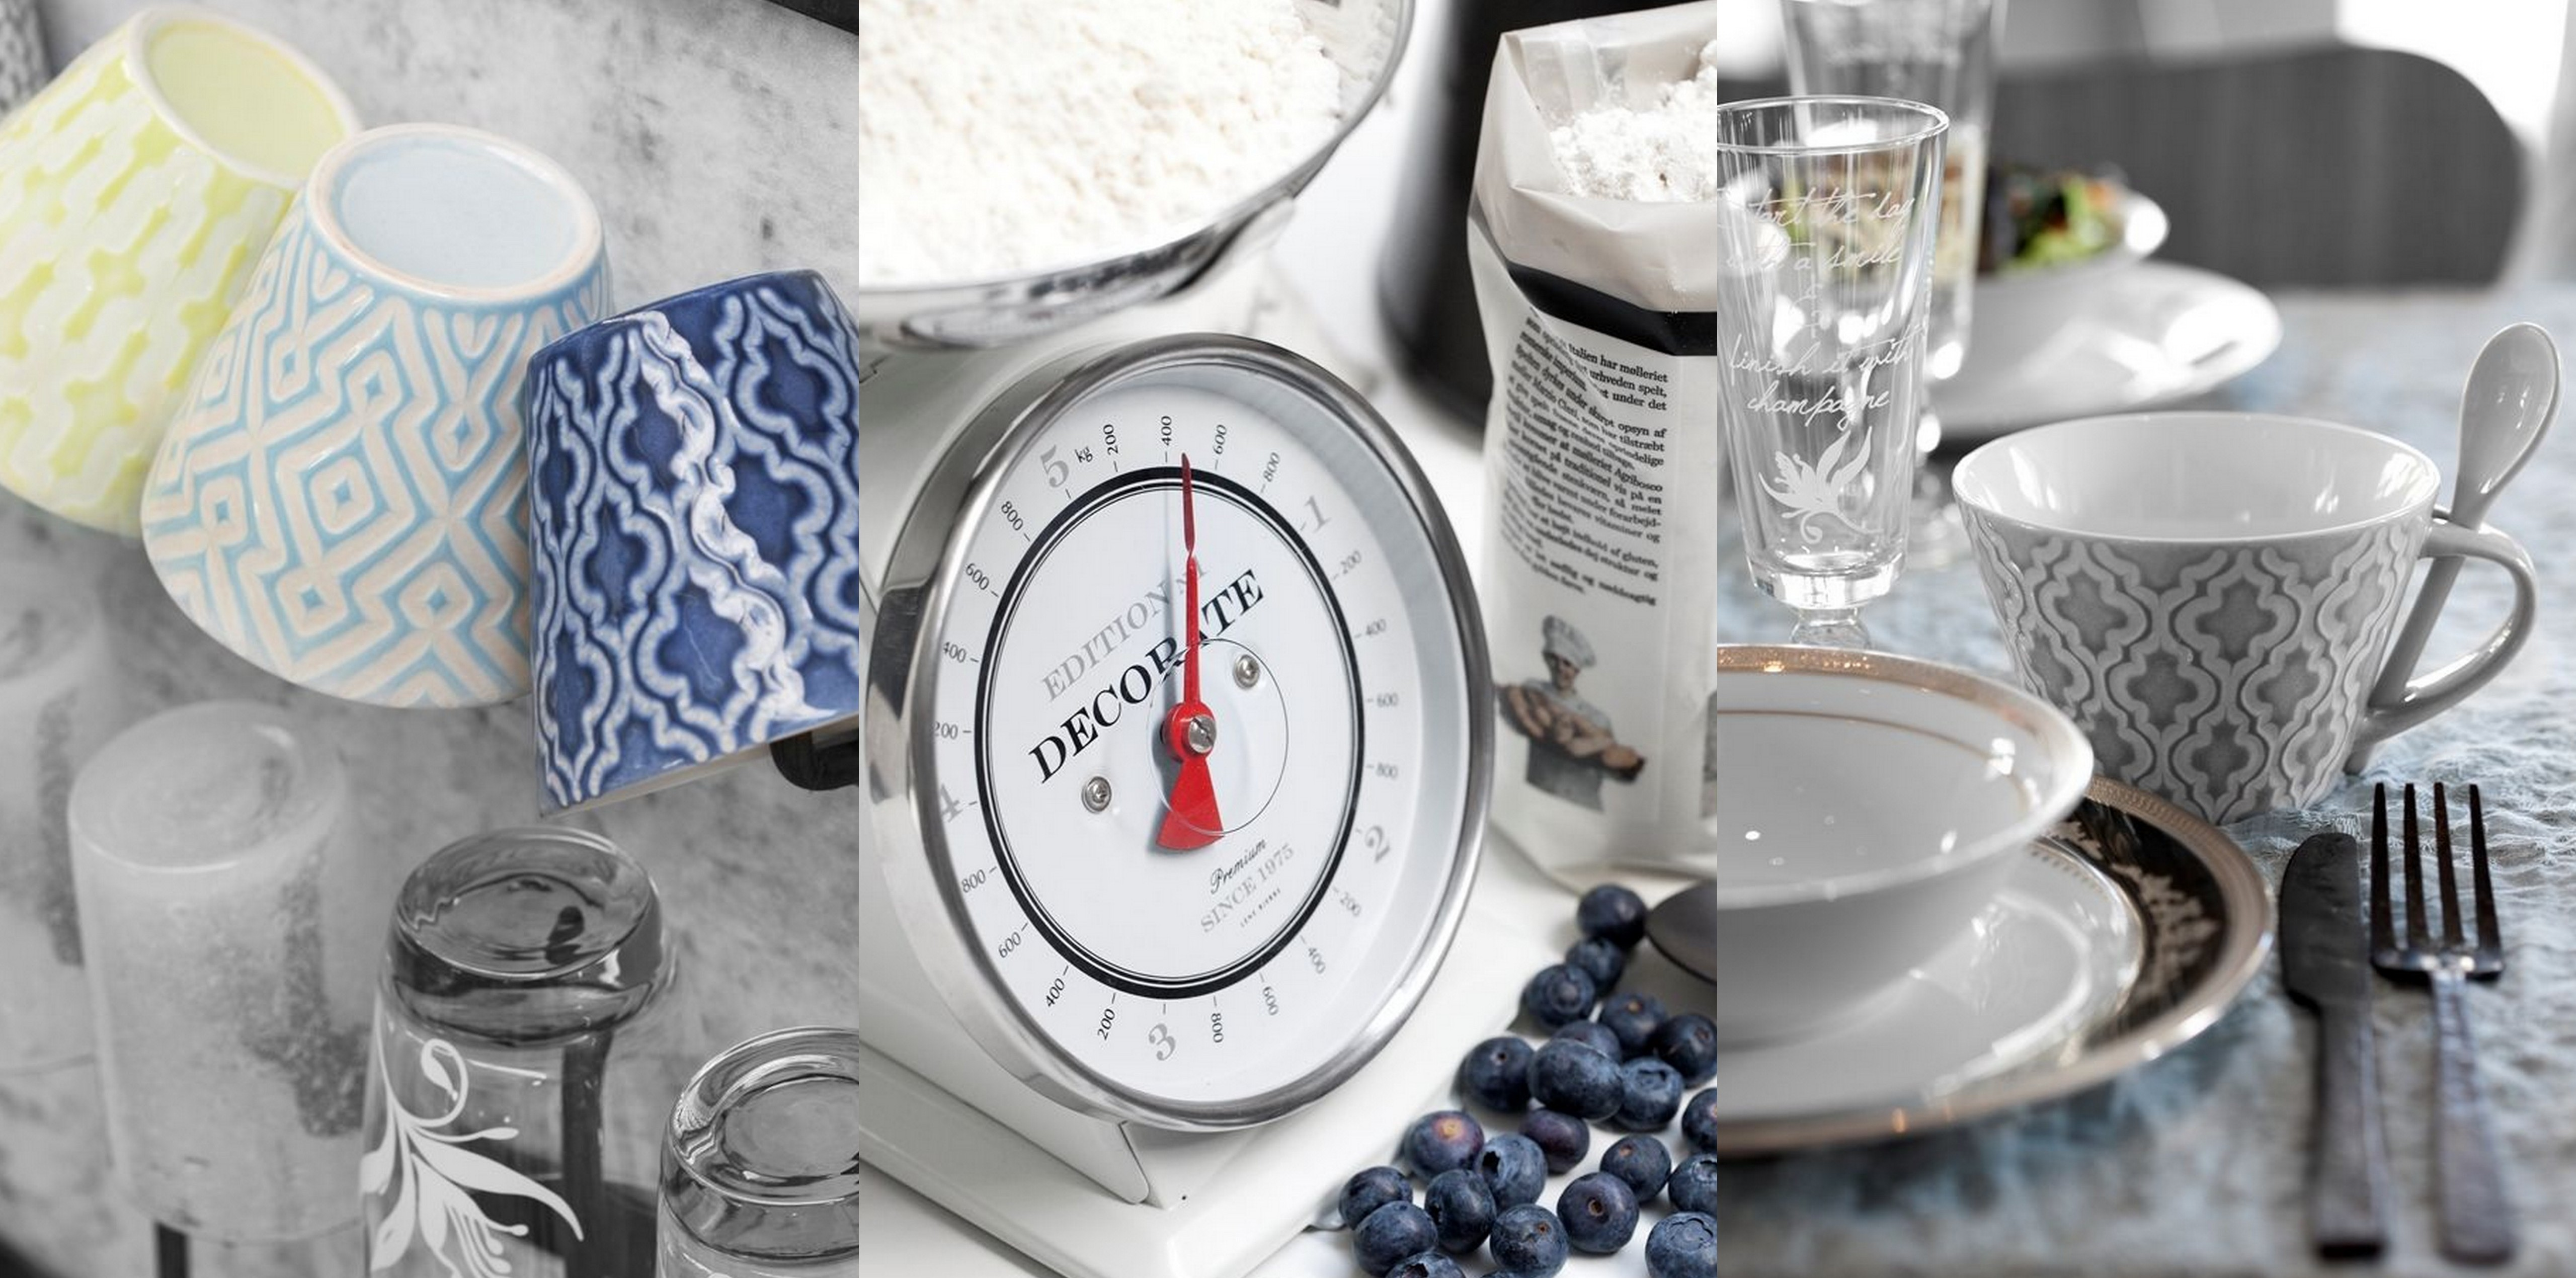 Lene Bjerre Kitchen Products....